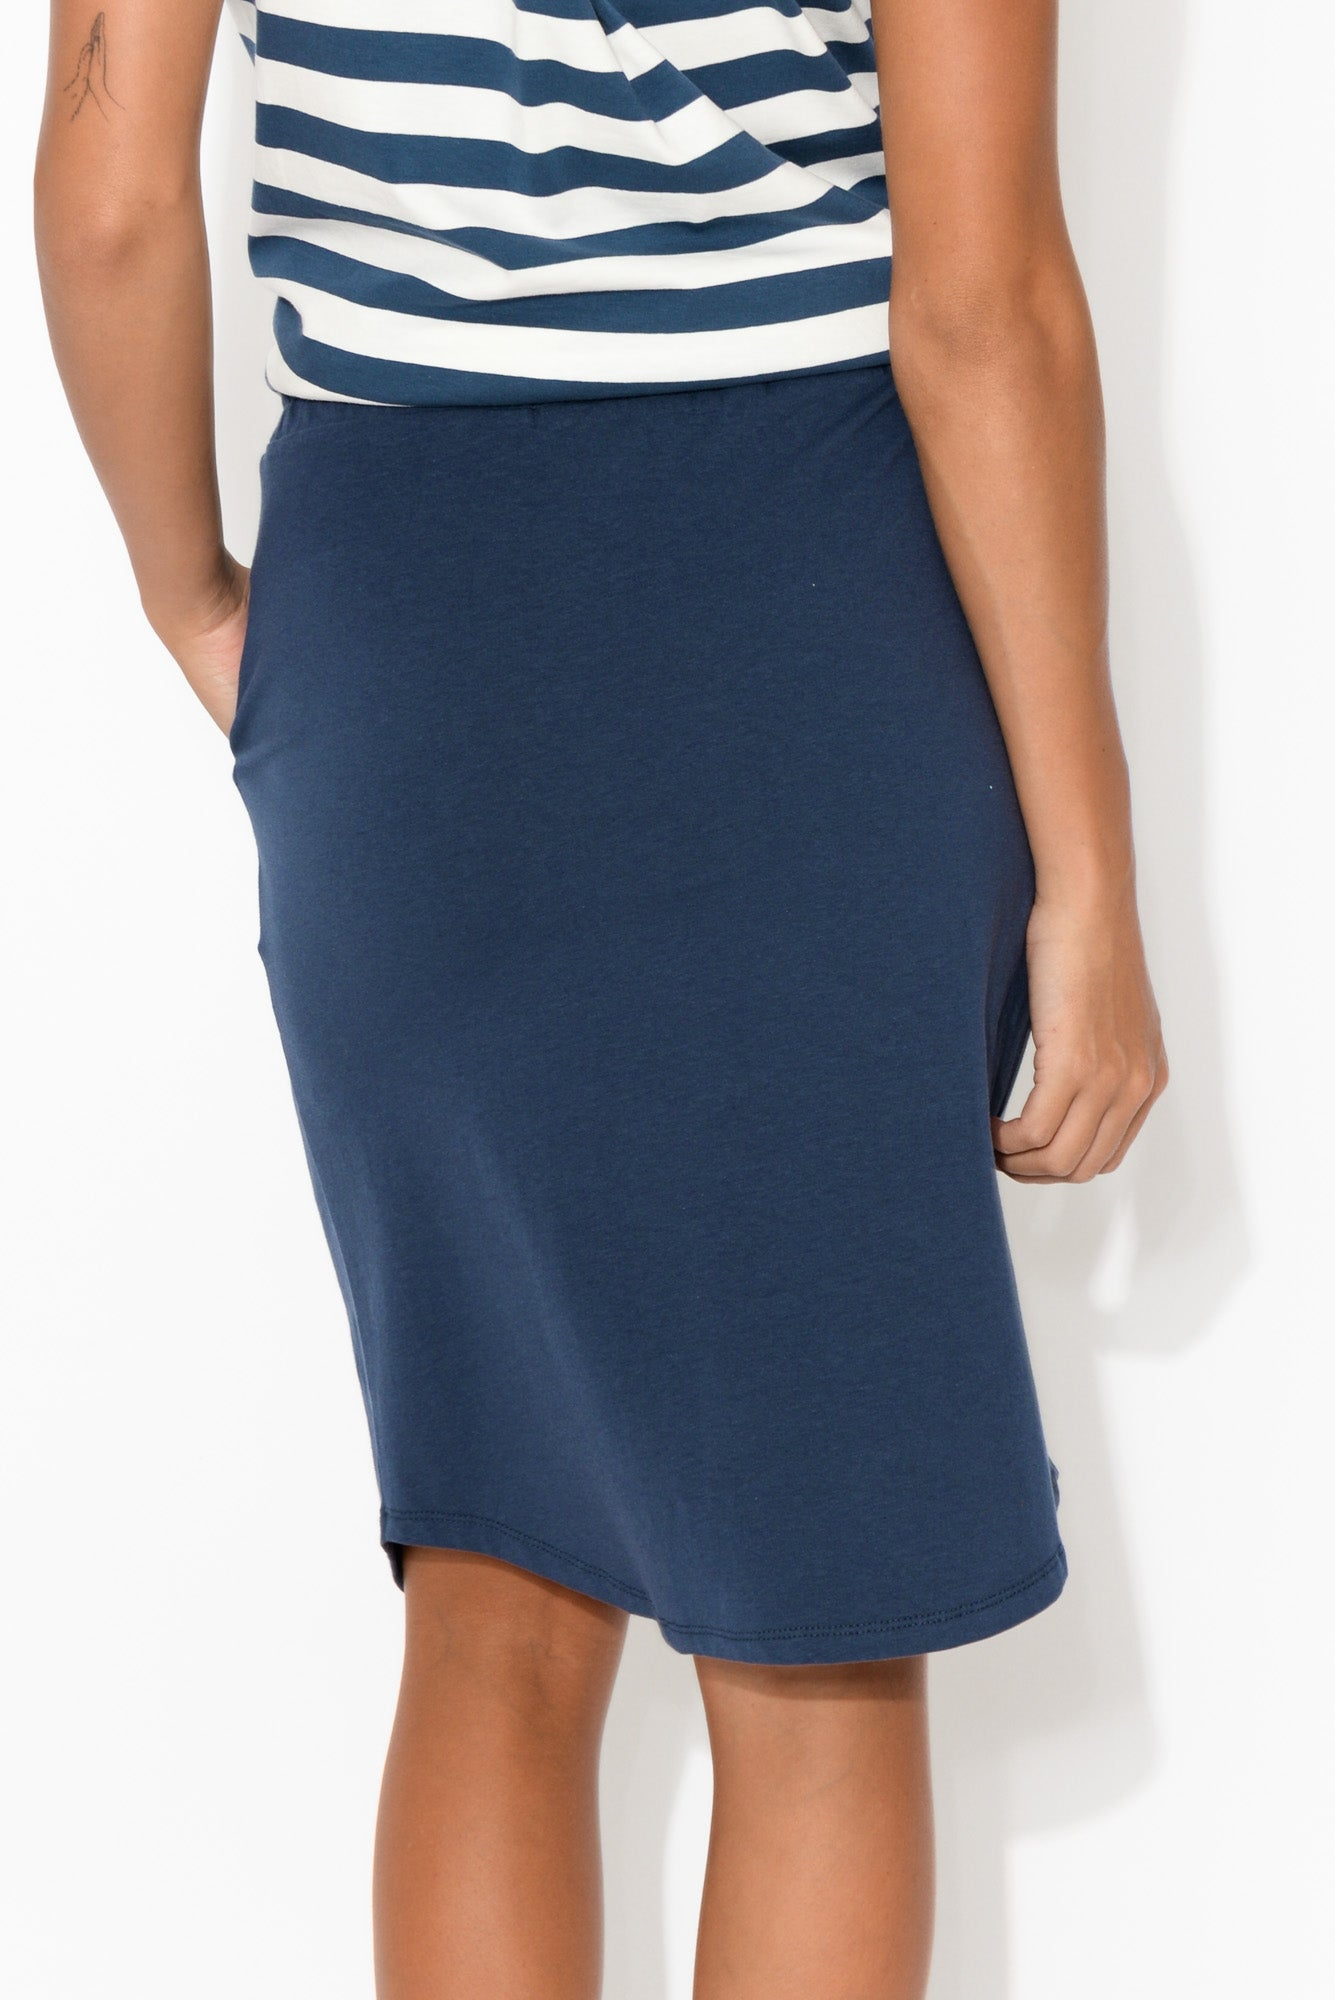 Navy Everyday Drawstring Skirt